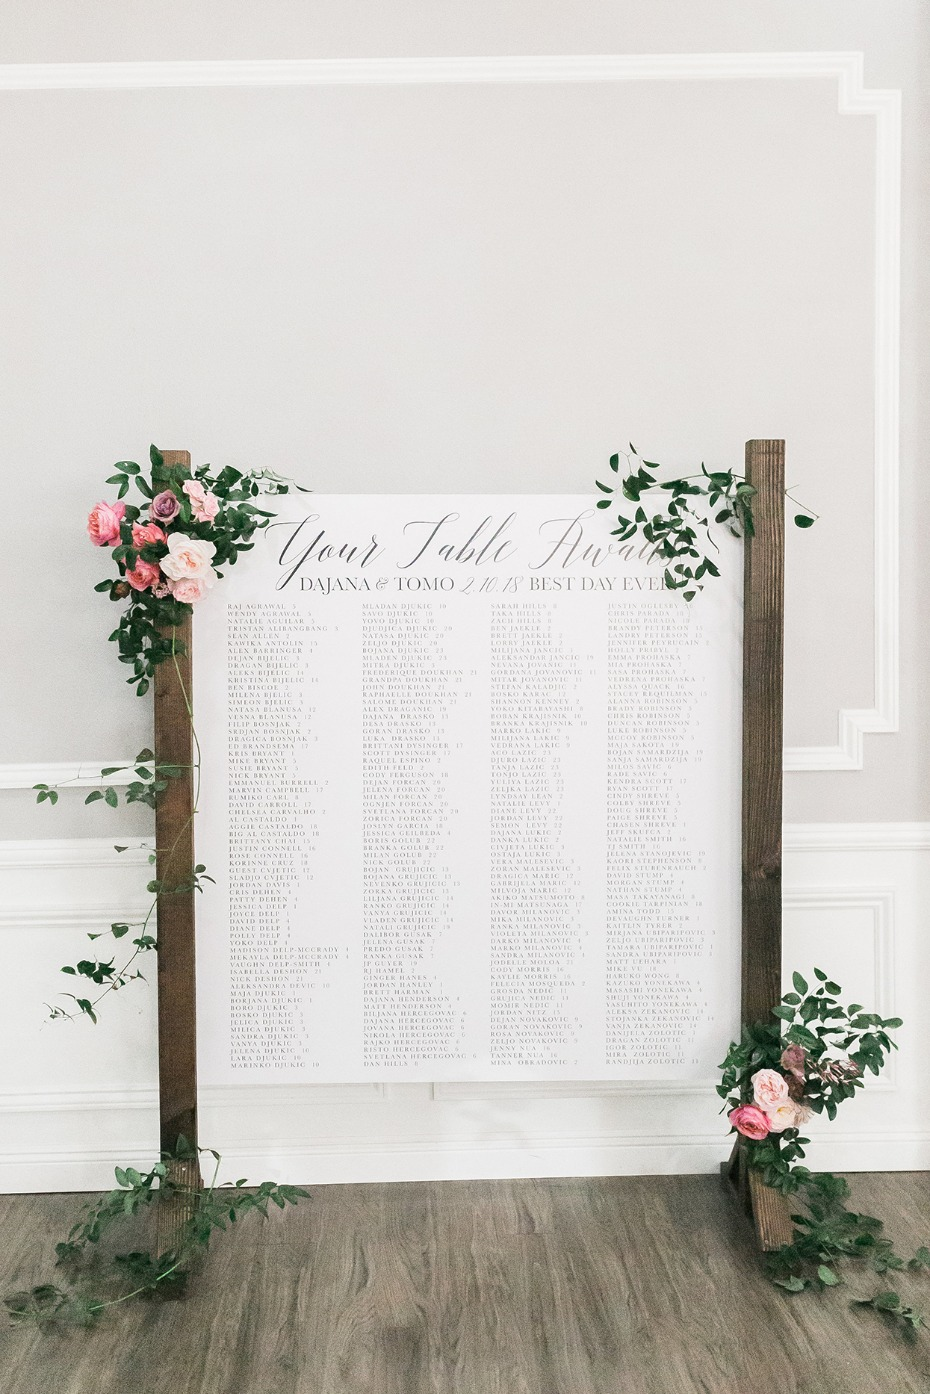 Seating chart for 250 guests